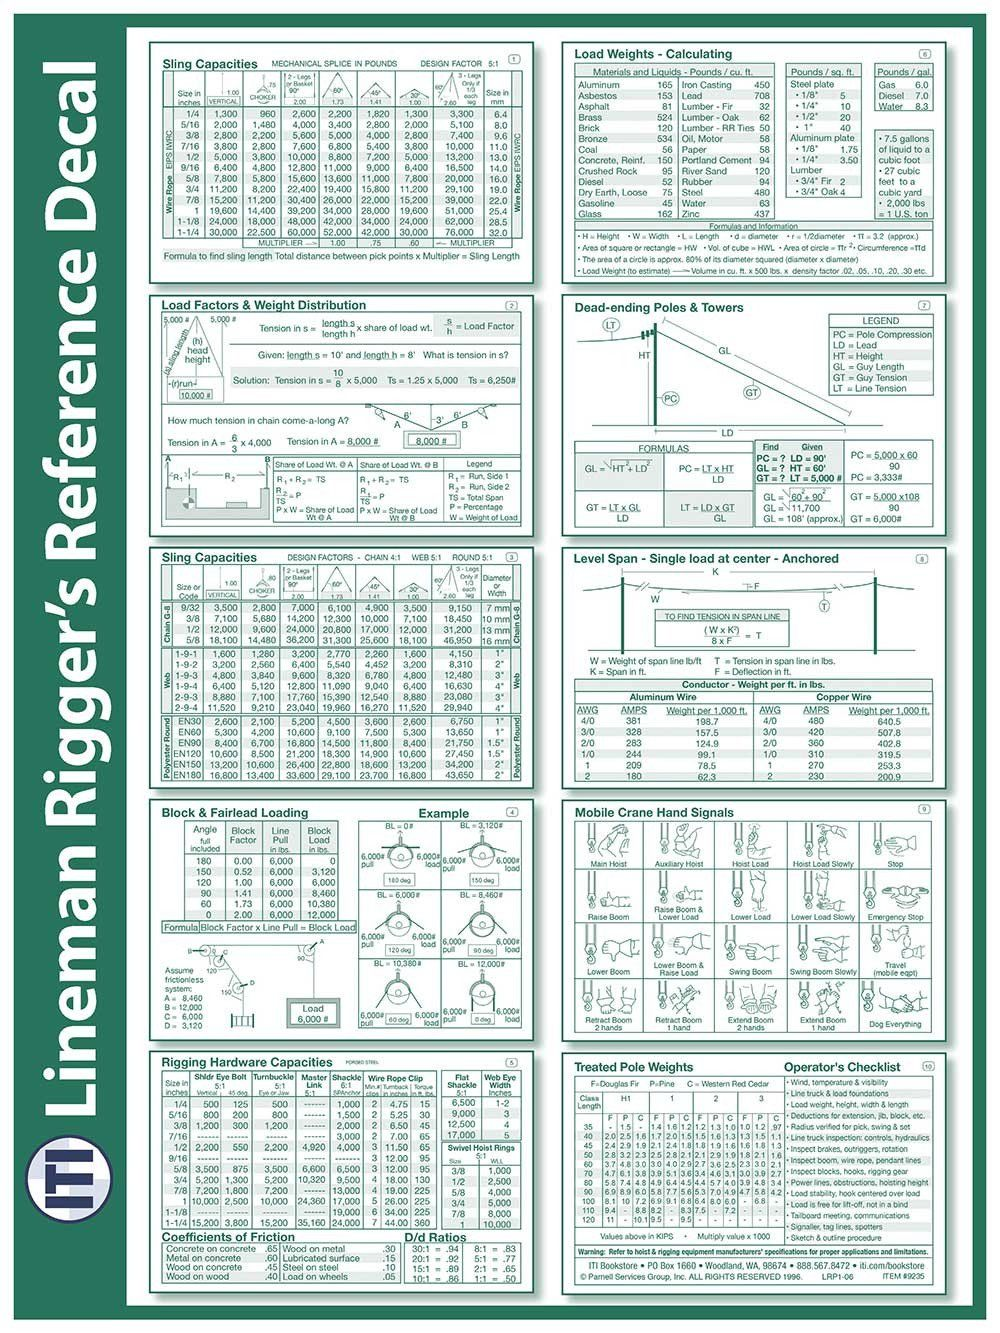 Lineman Rigger Reference Decal | Lineman and Products